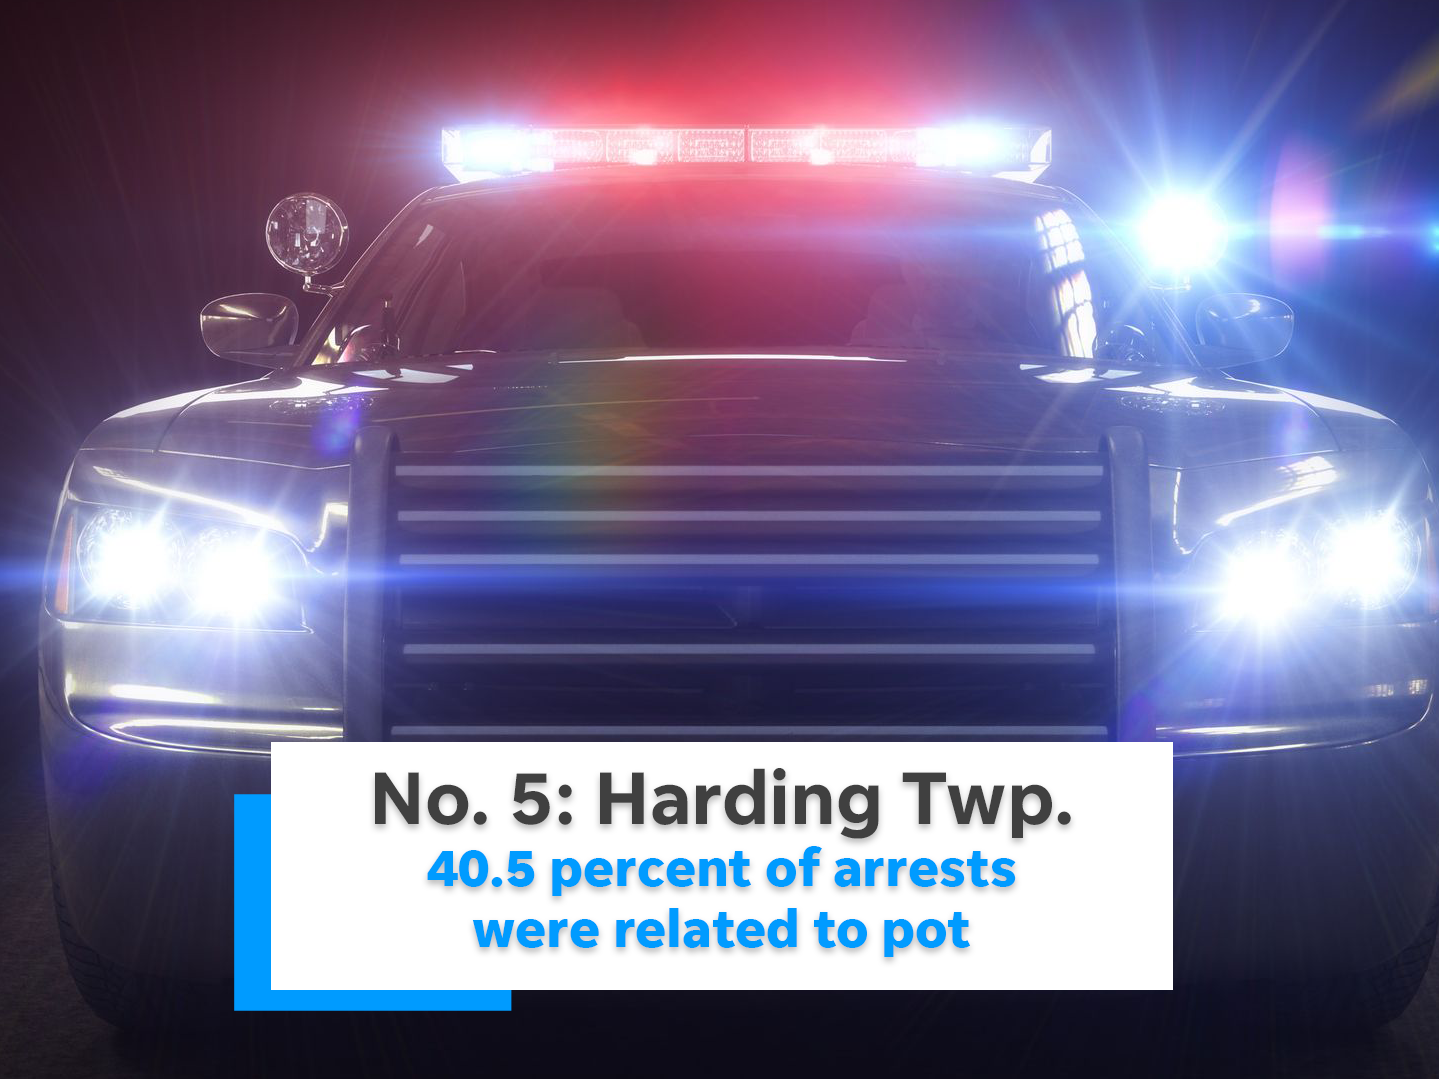 40.5 percent of Harding Township's arrests were related to marijuana.